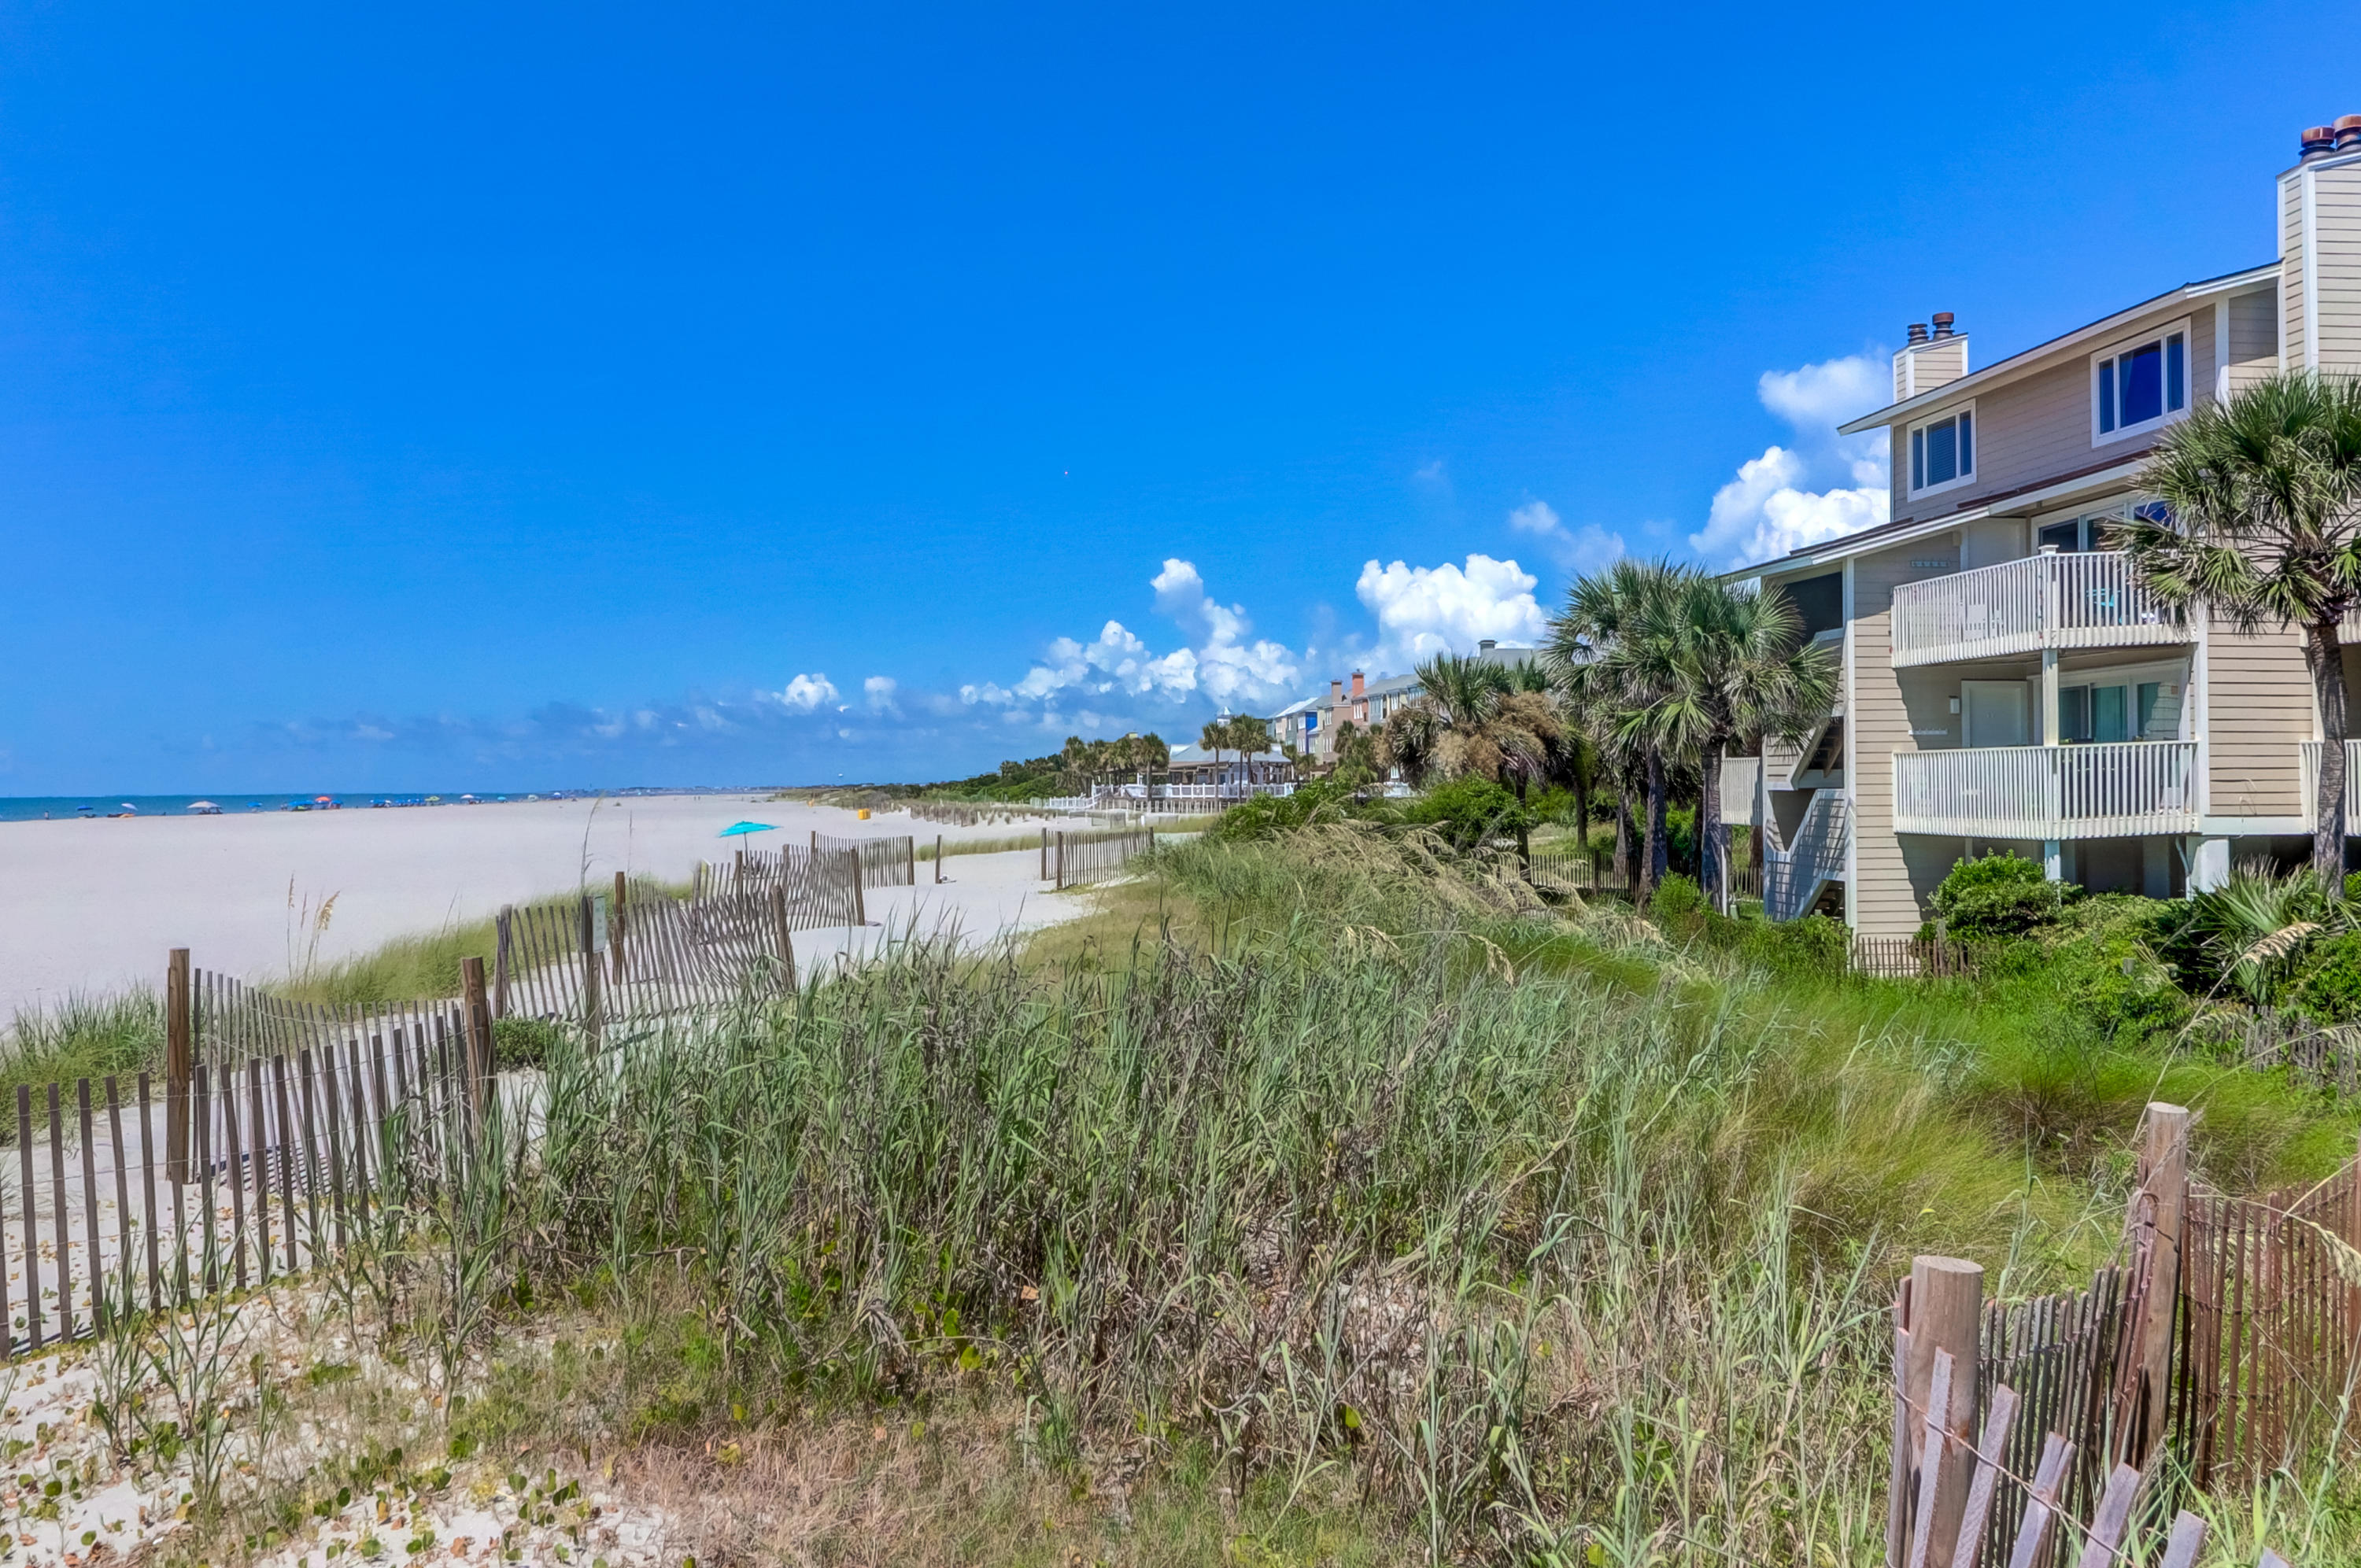 Wild Dunes Homes For Sale - 5 Seagrove, Isle of Palms, SC - 17